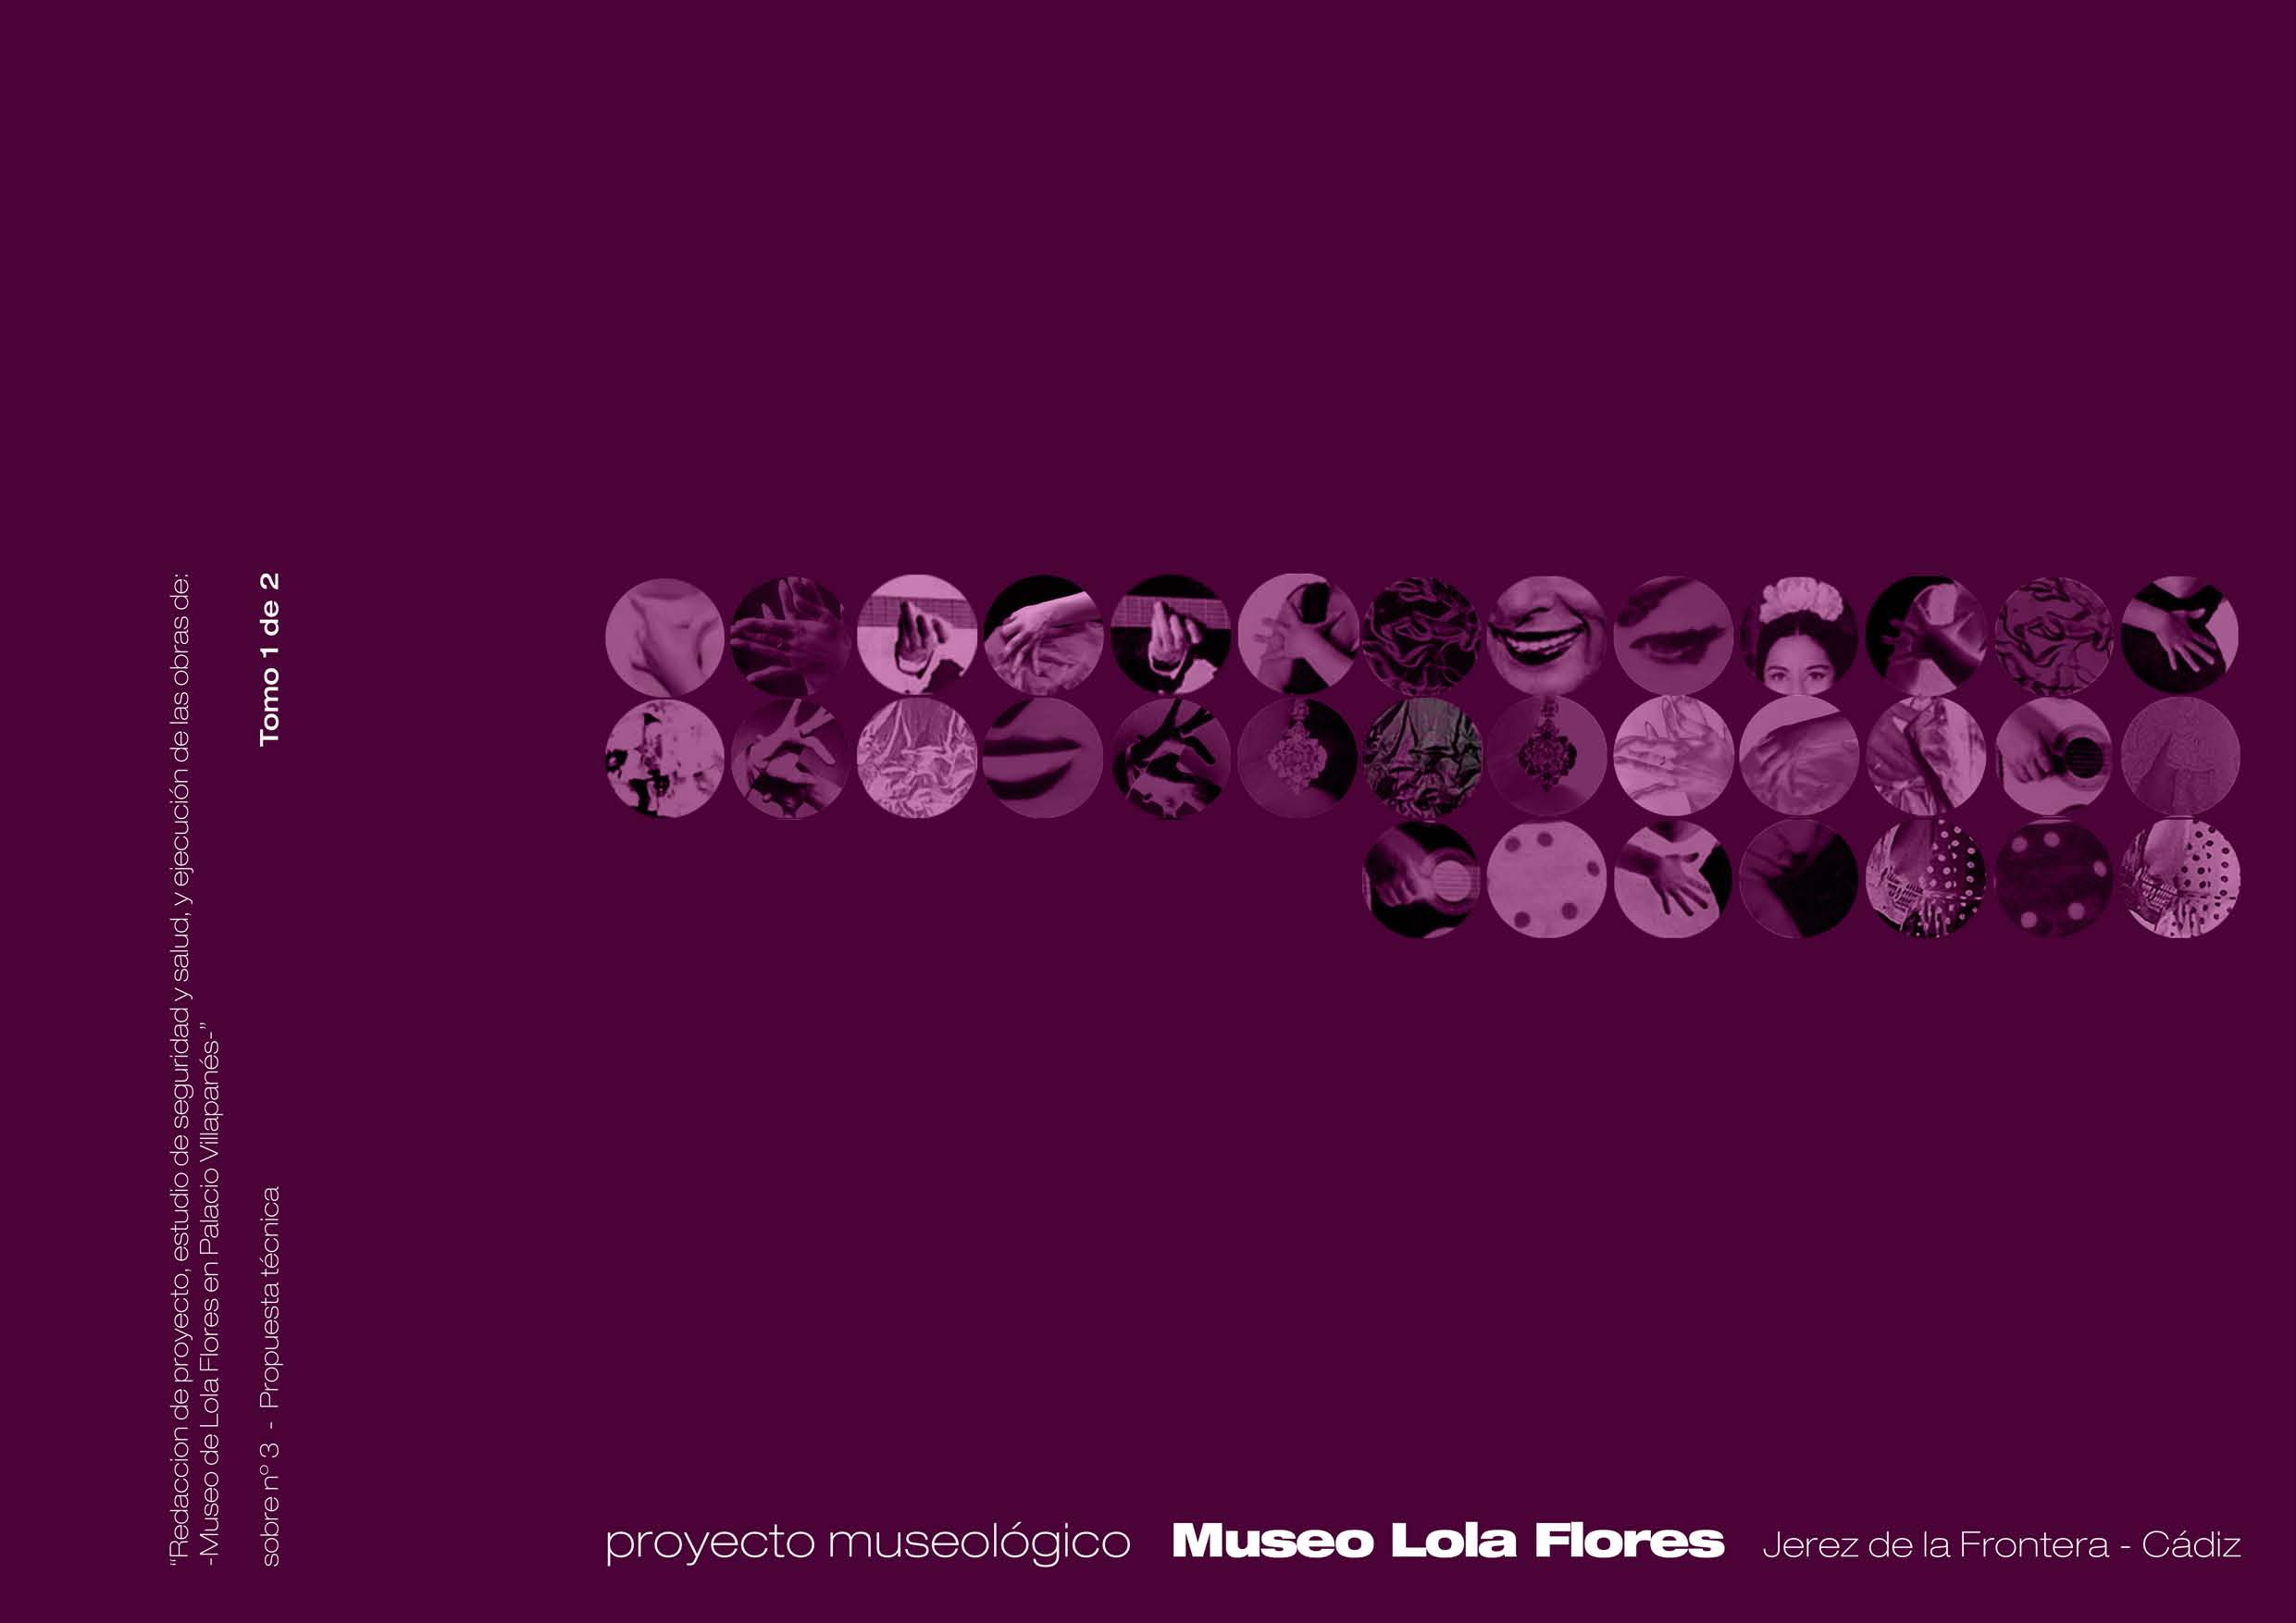 museo_lola_flores_1